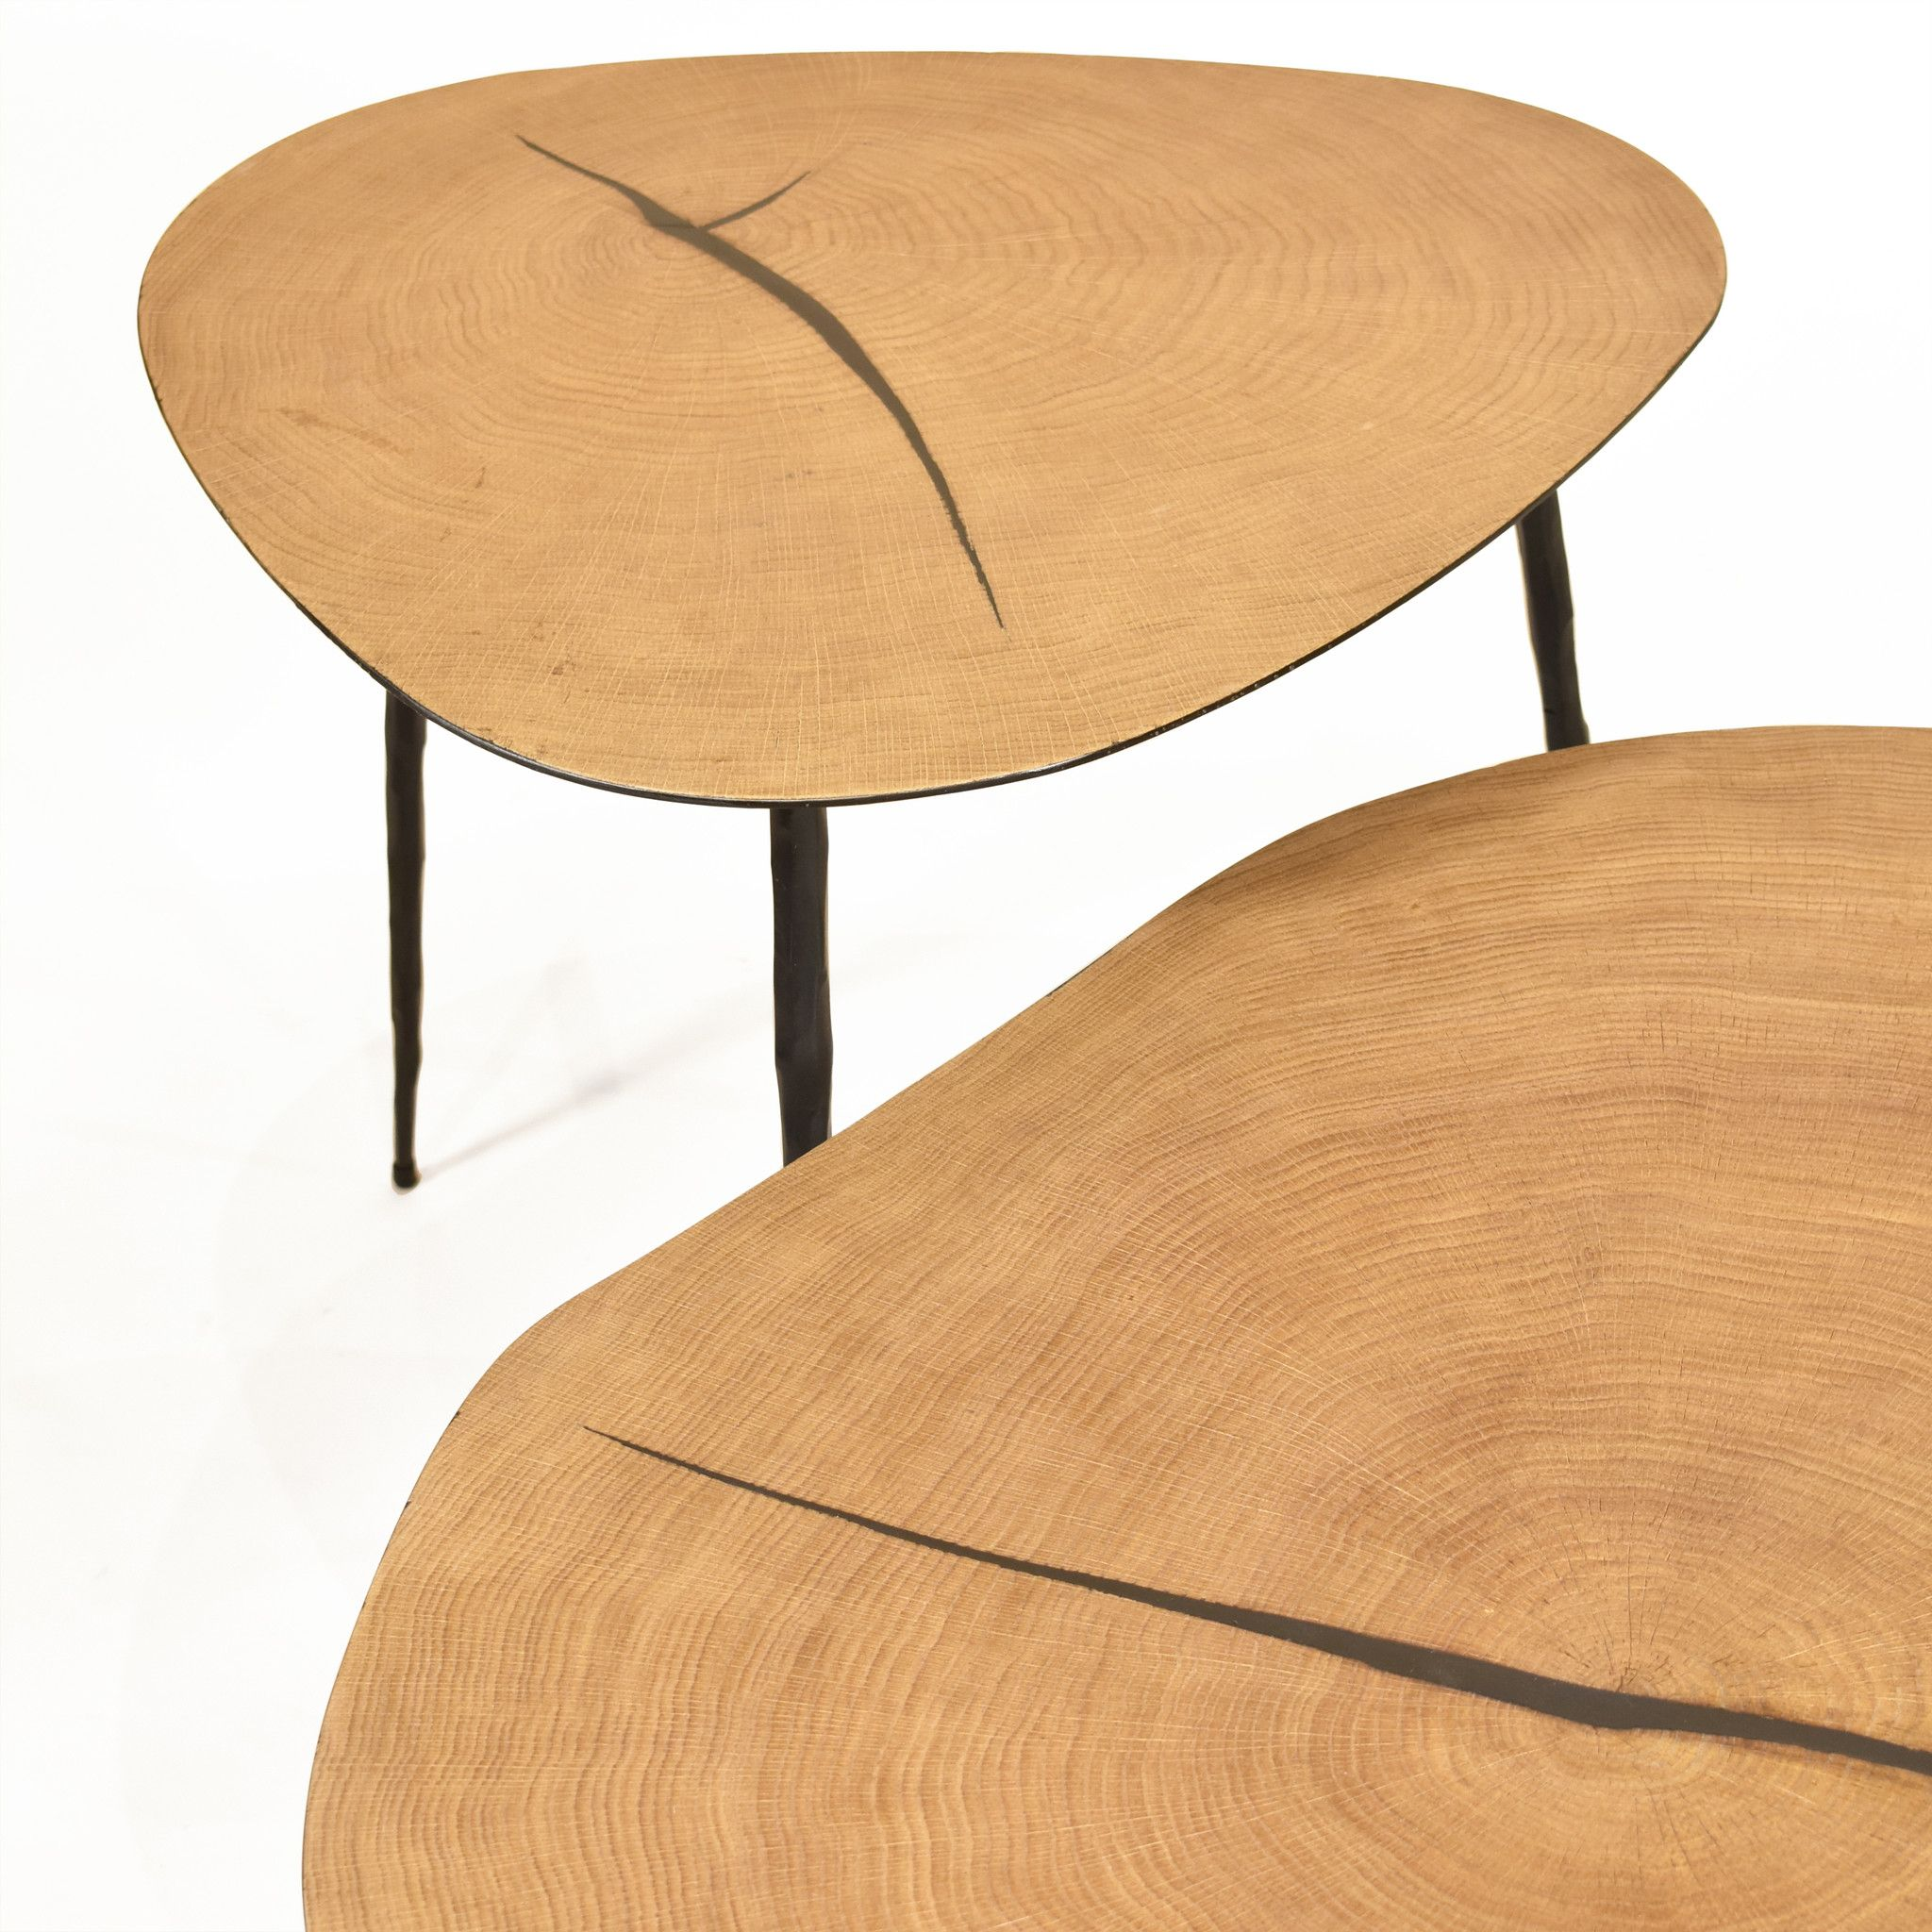 Slice Coffee Table Coffee Table Modern Coffee Tables Table [ 2048 x 2048 Pixel ]